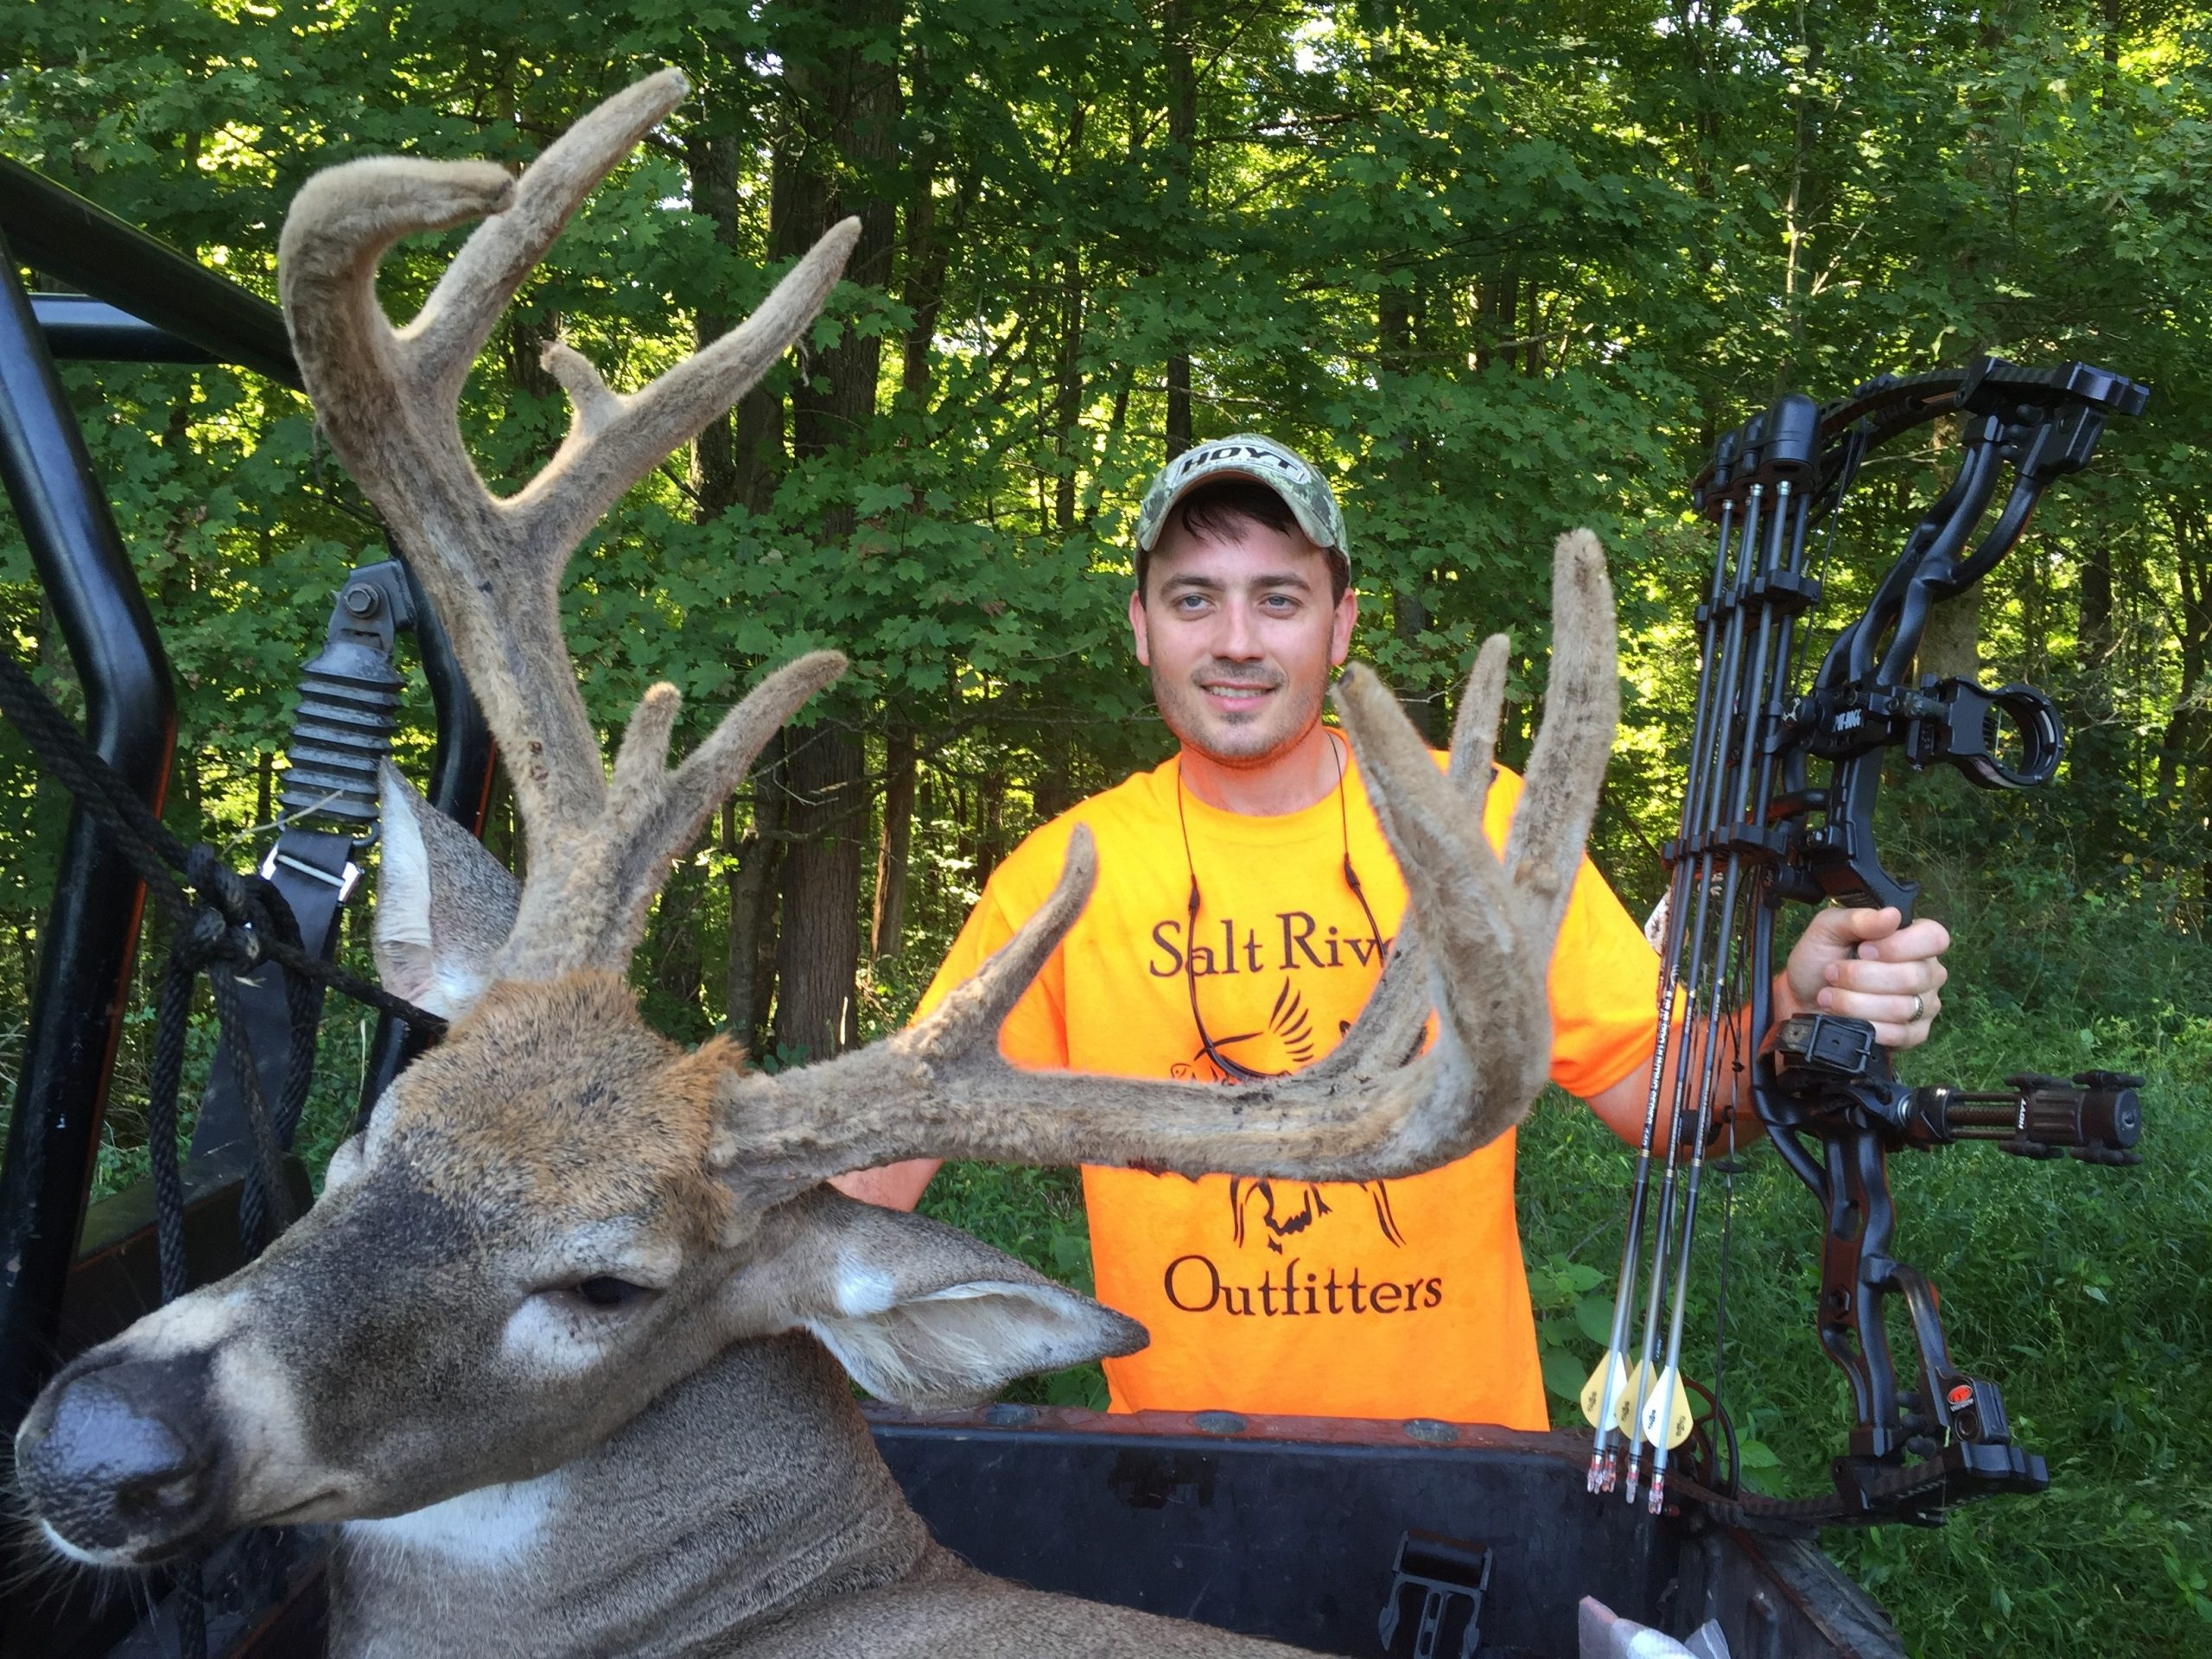 Kentucky Turkey & Deer Hunting Outfitters   Salt River Outfitters-Rut Season In Ky